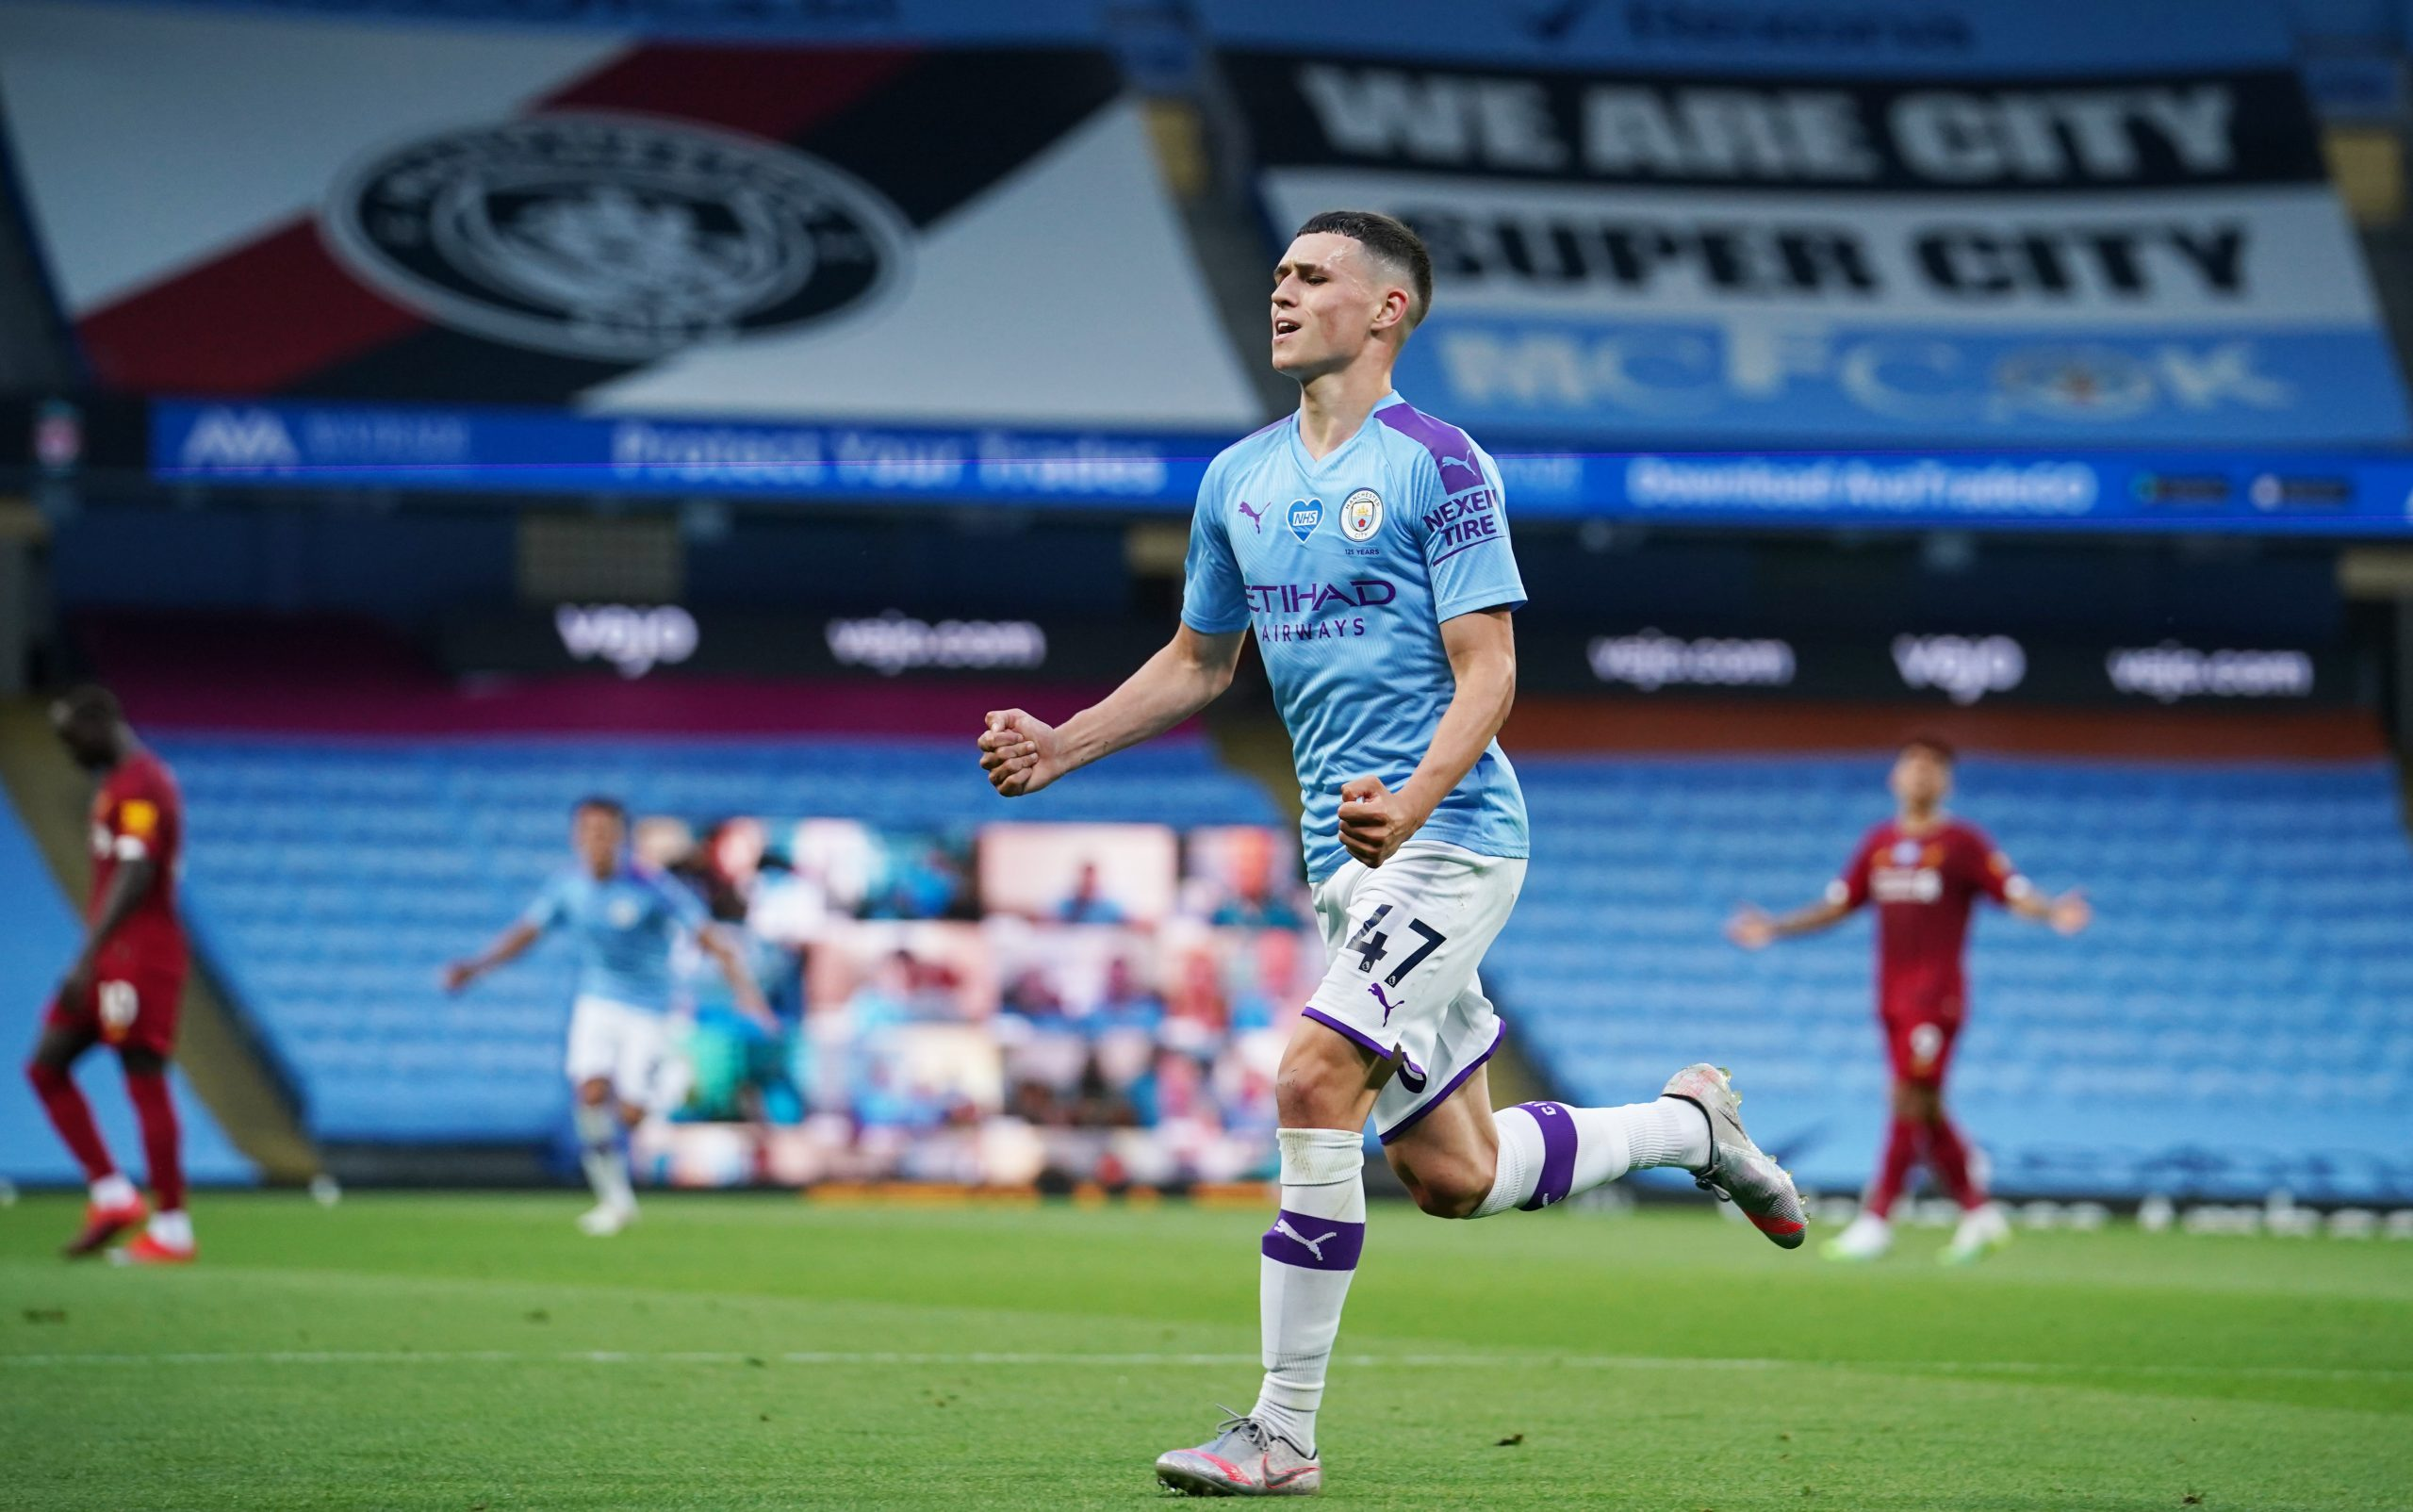 Manchester City shortest players 2020 - Foden